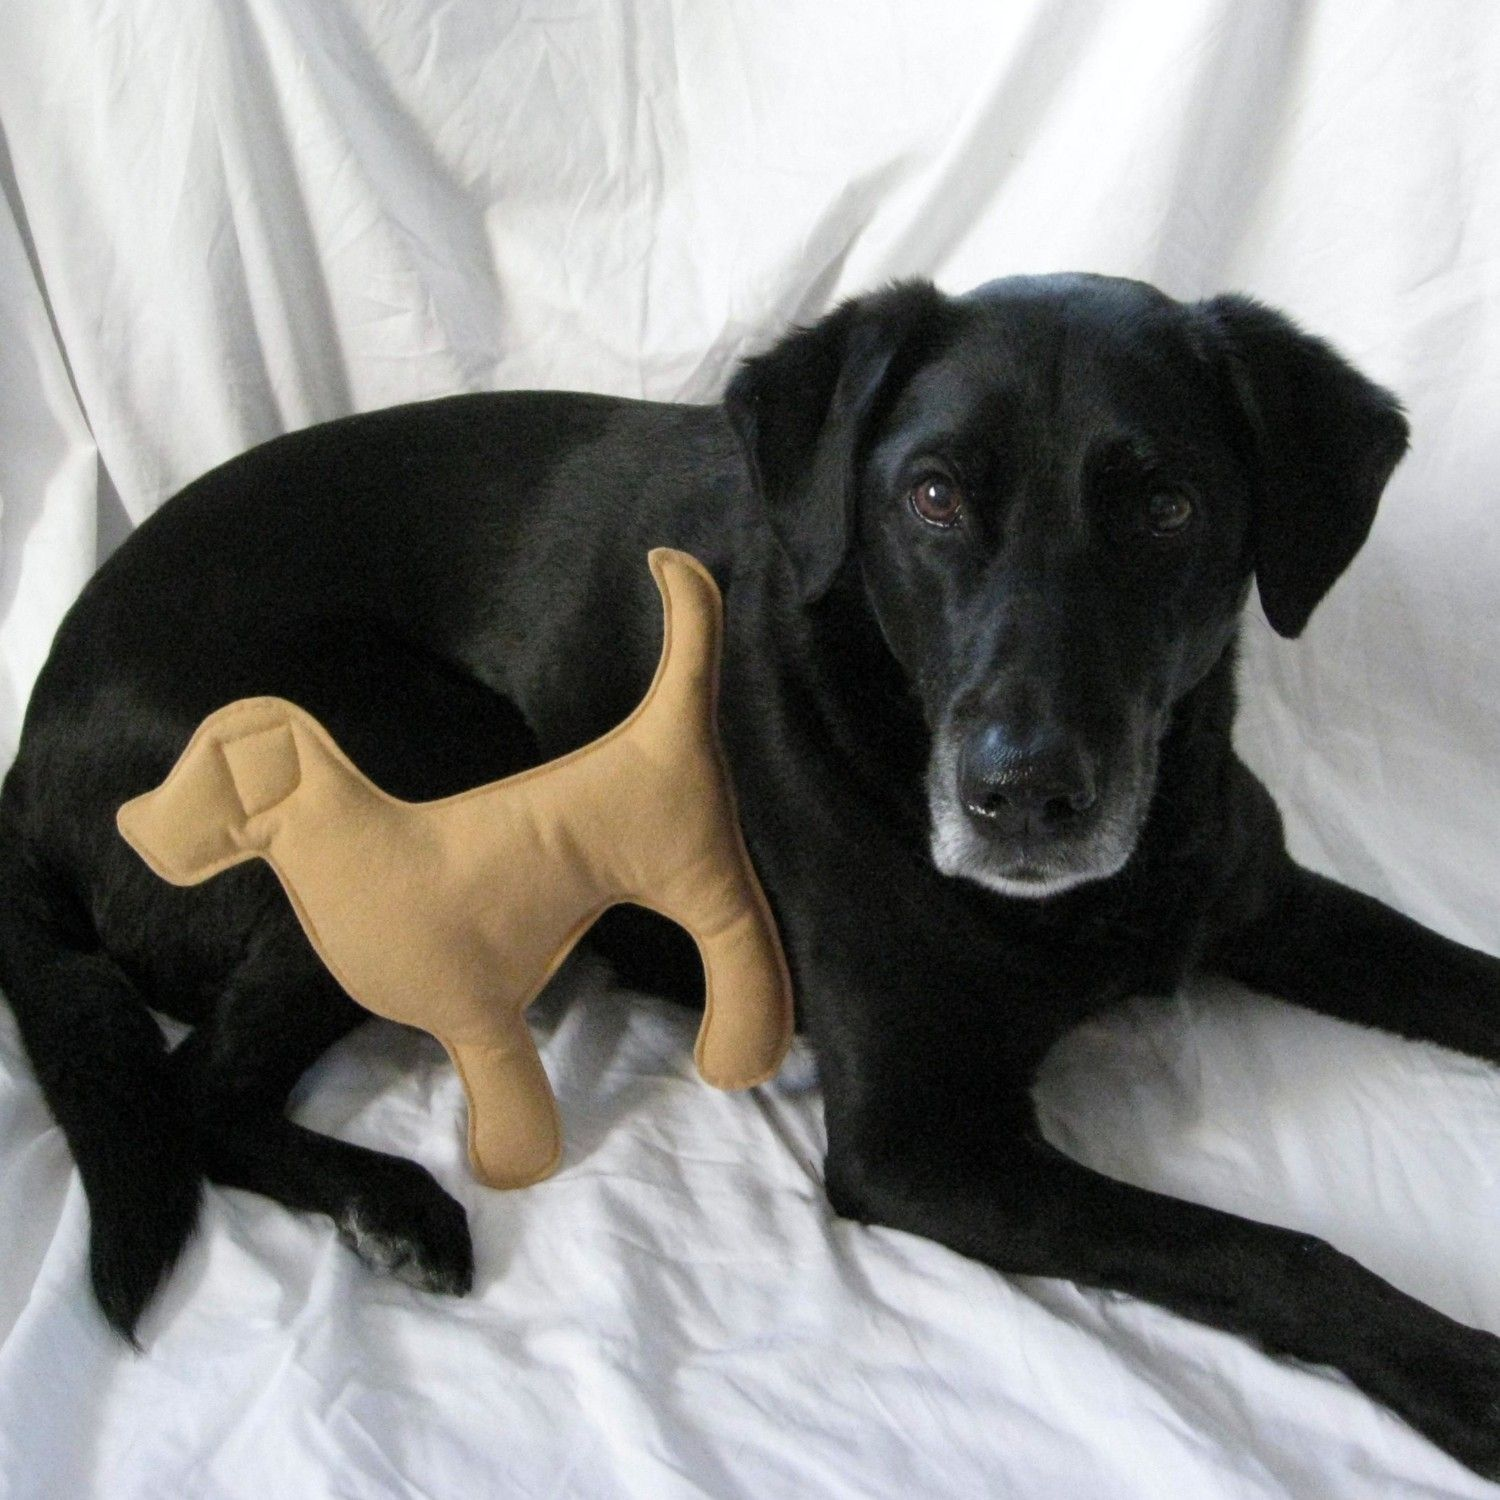 Yellow Lab Dog Toy for Dogs $10 00 via Etsy